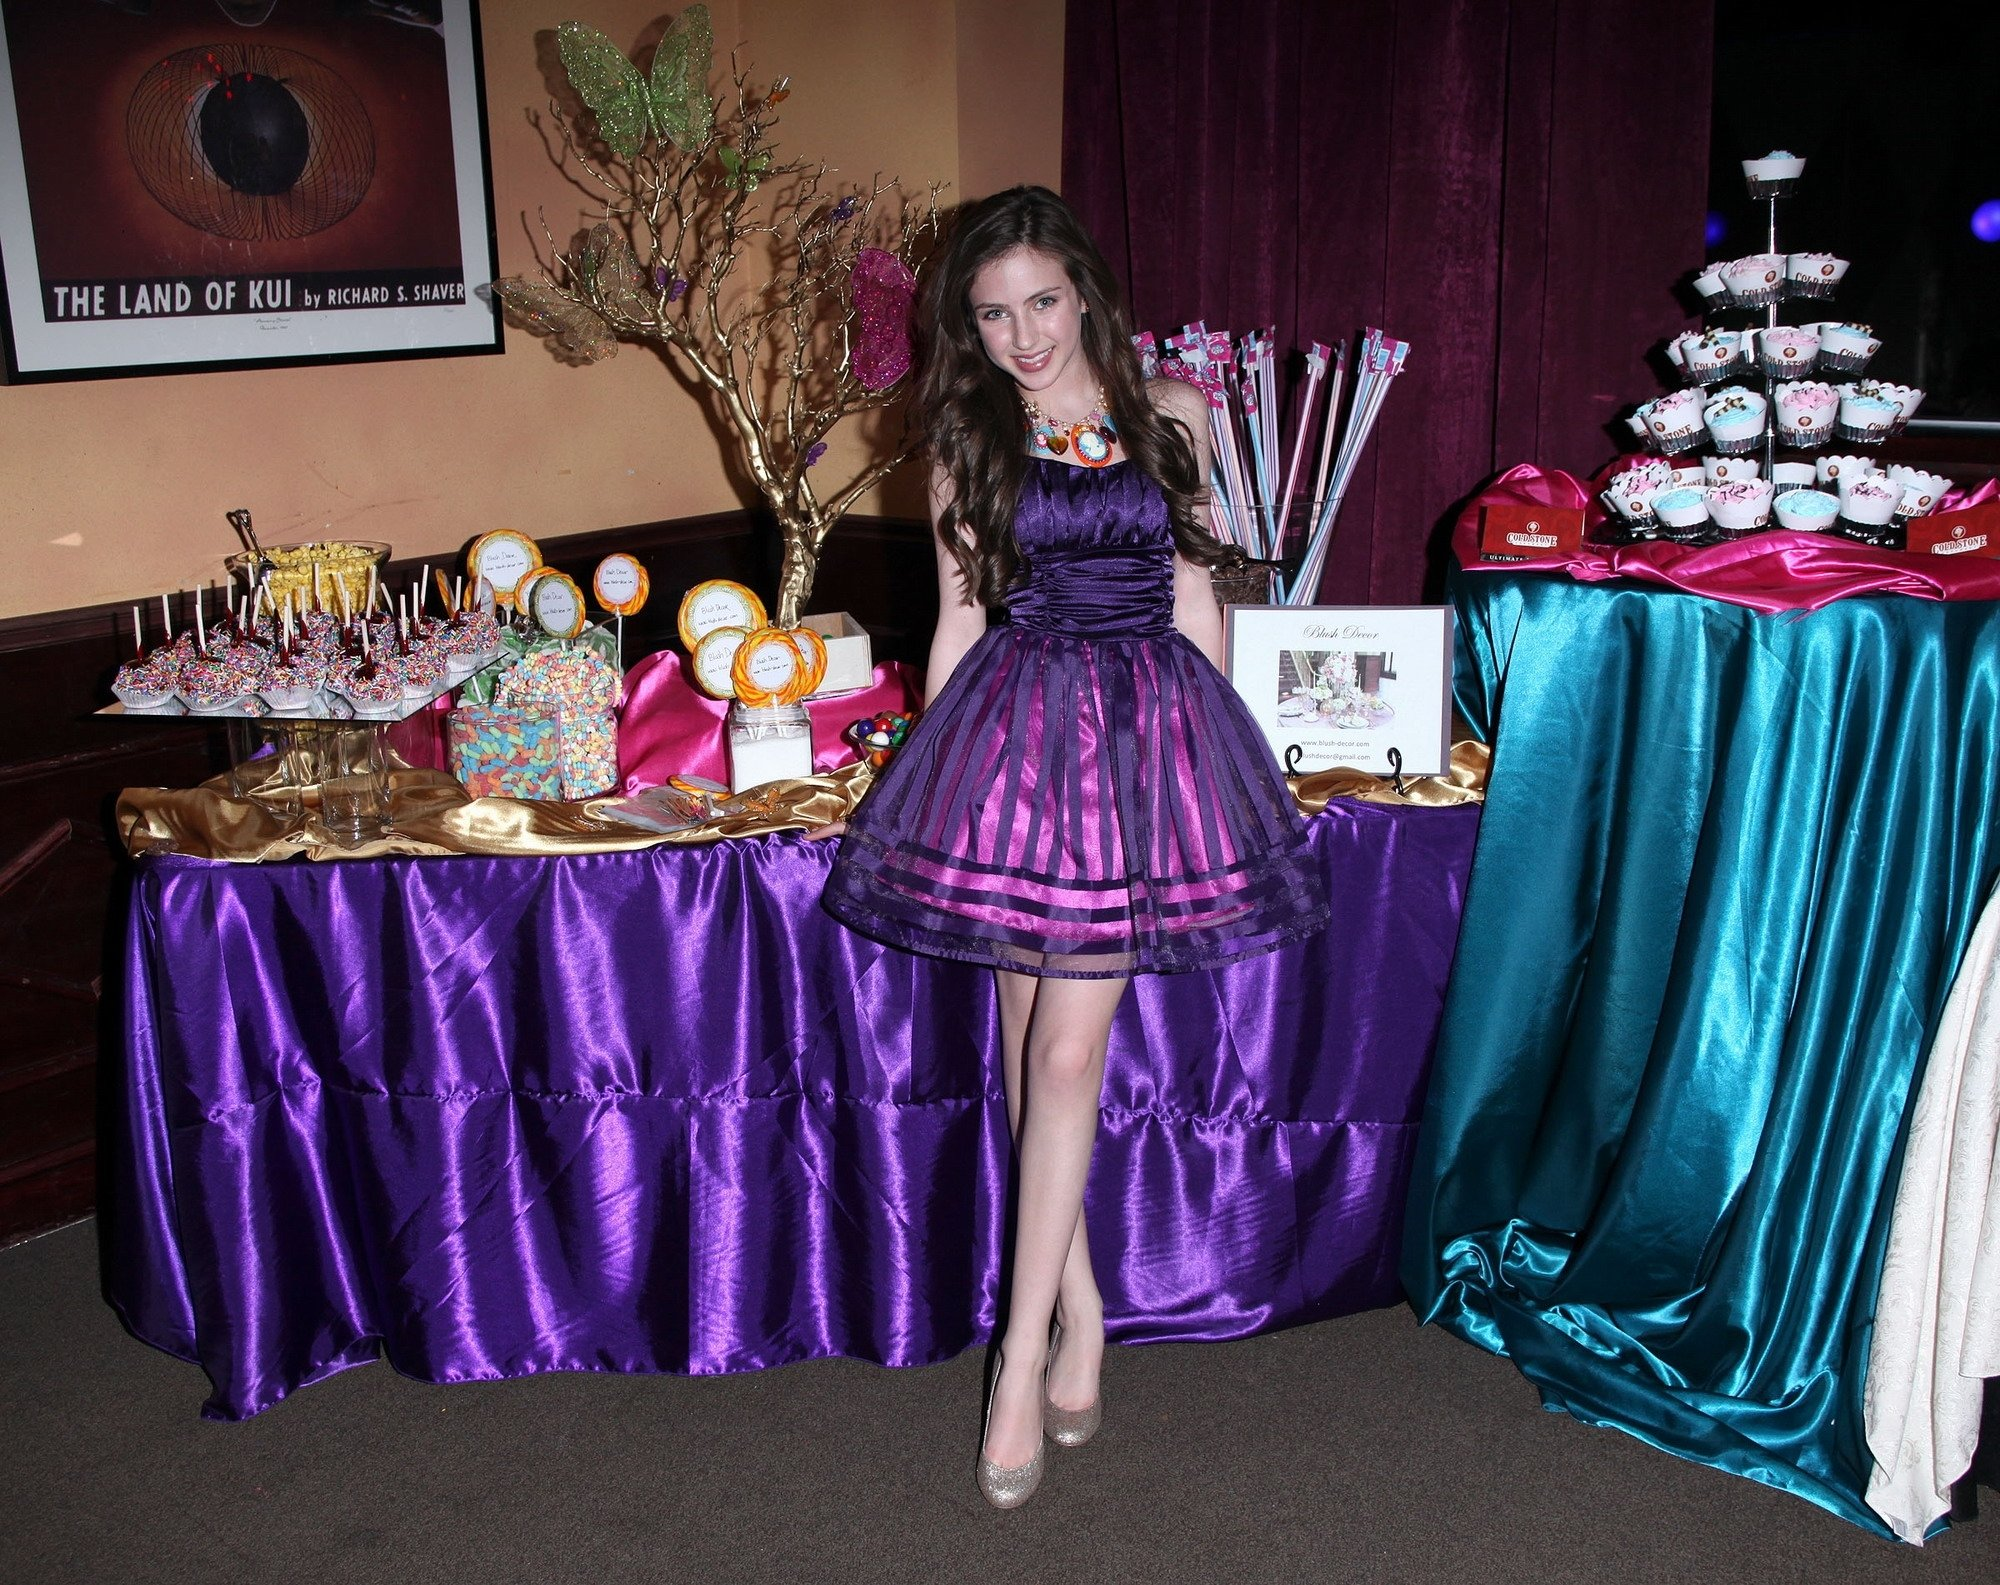 10 Elegant Ideas For A 13Th Birthday Party For A Girl 13th birthday google search elena stuffs pinterest 13th 1 2021